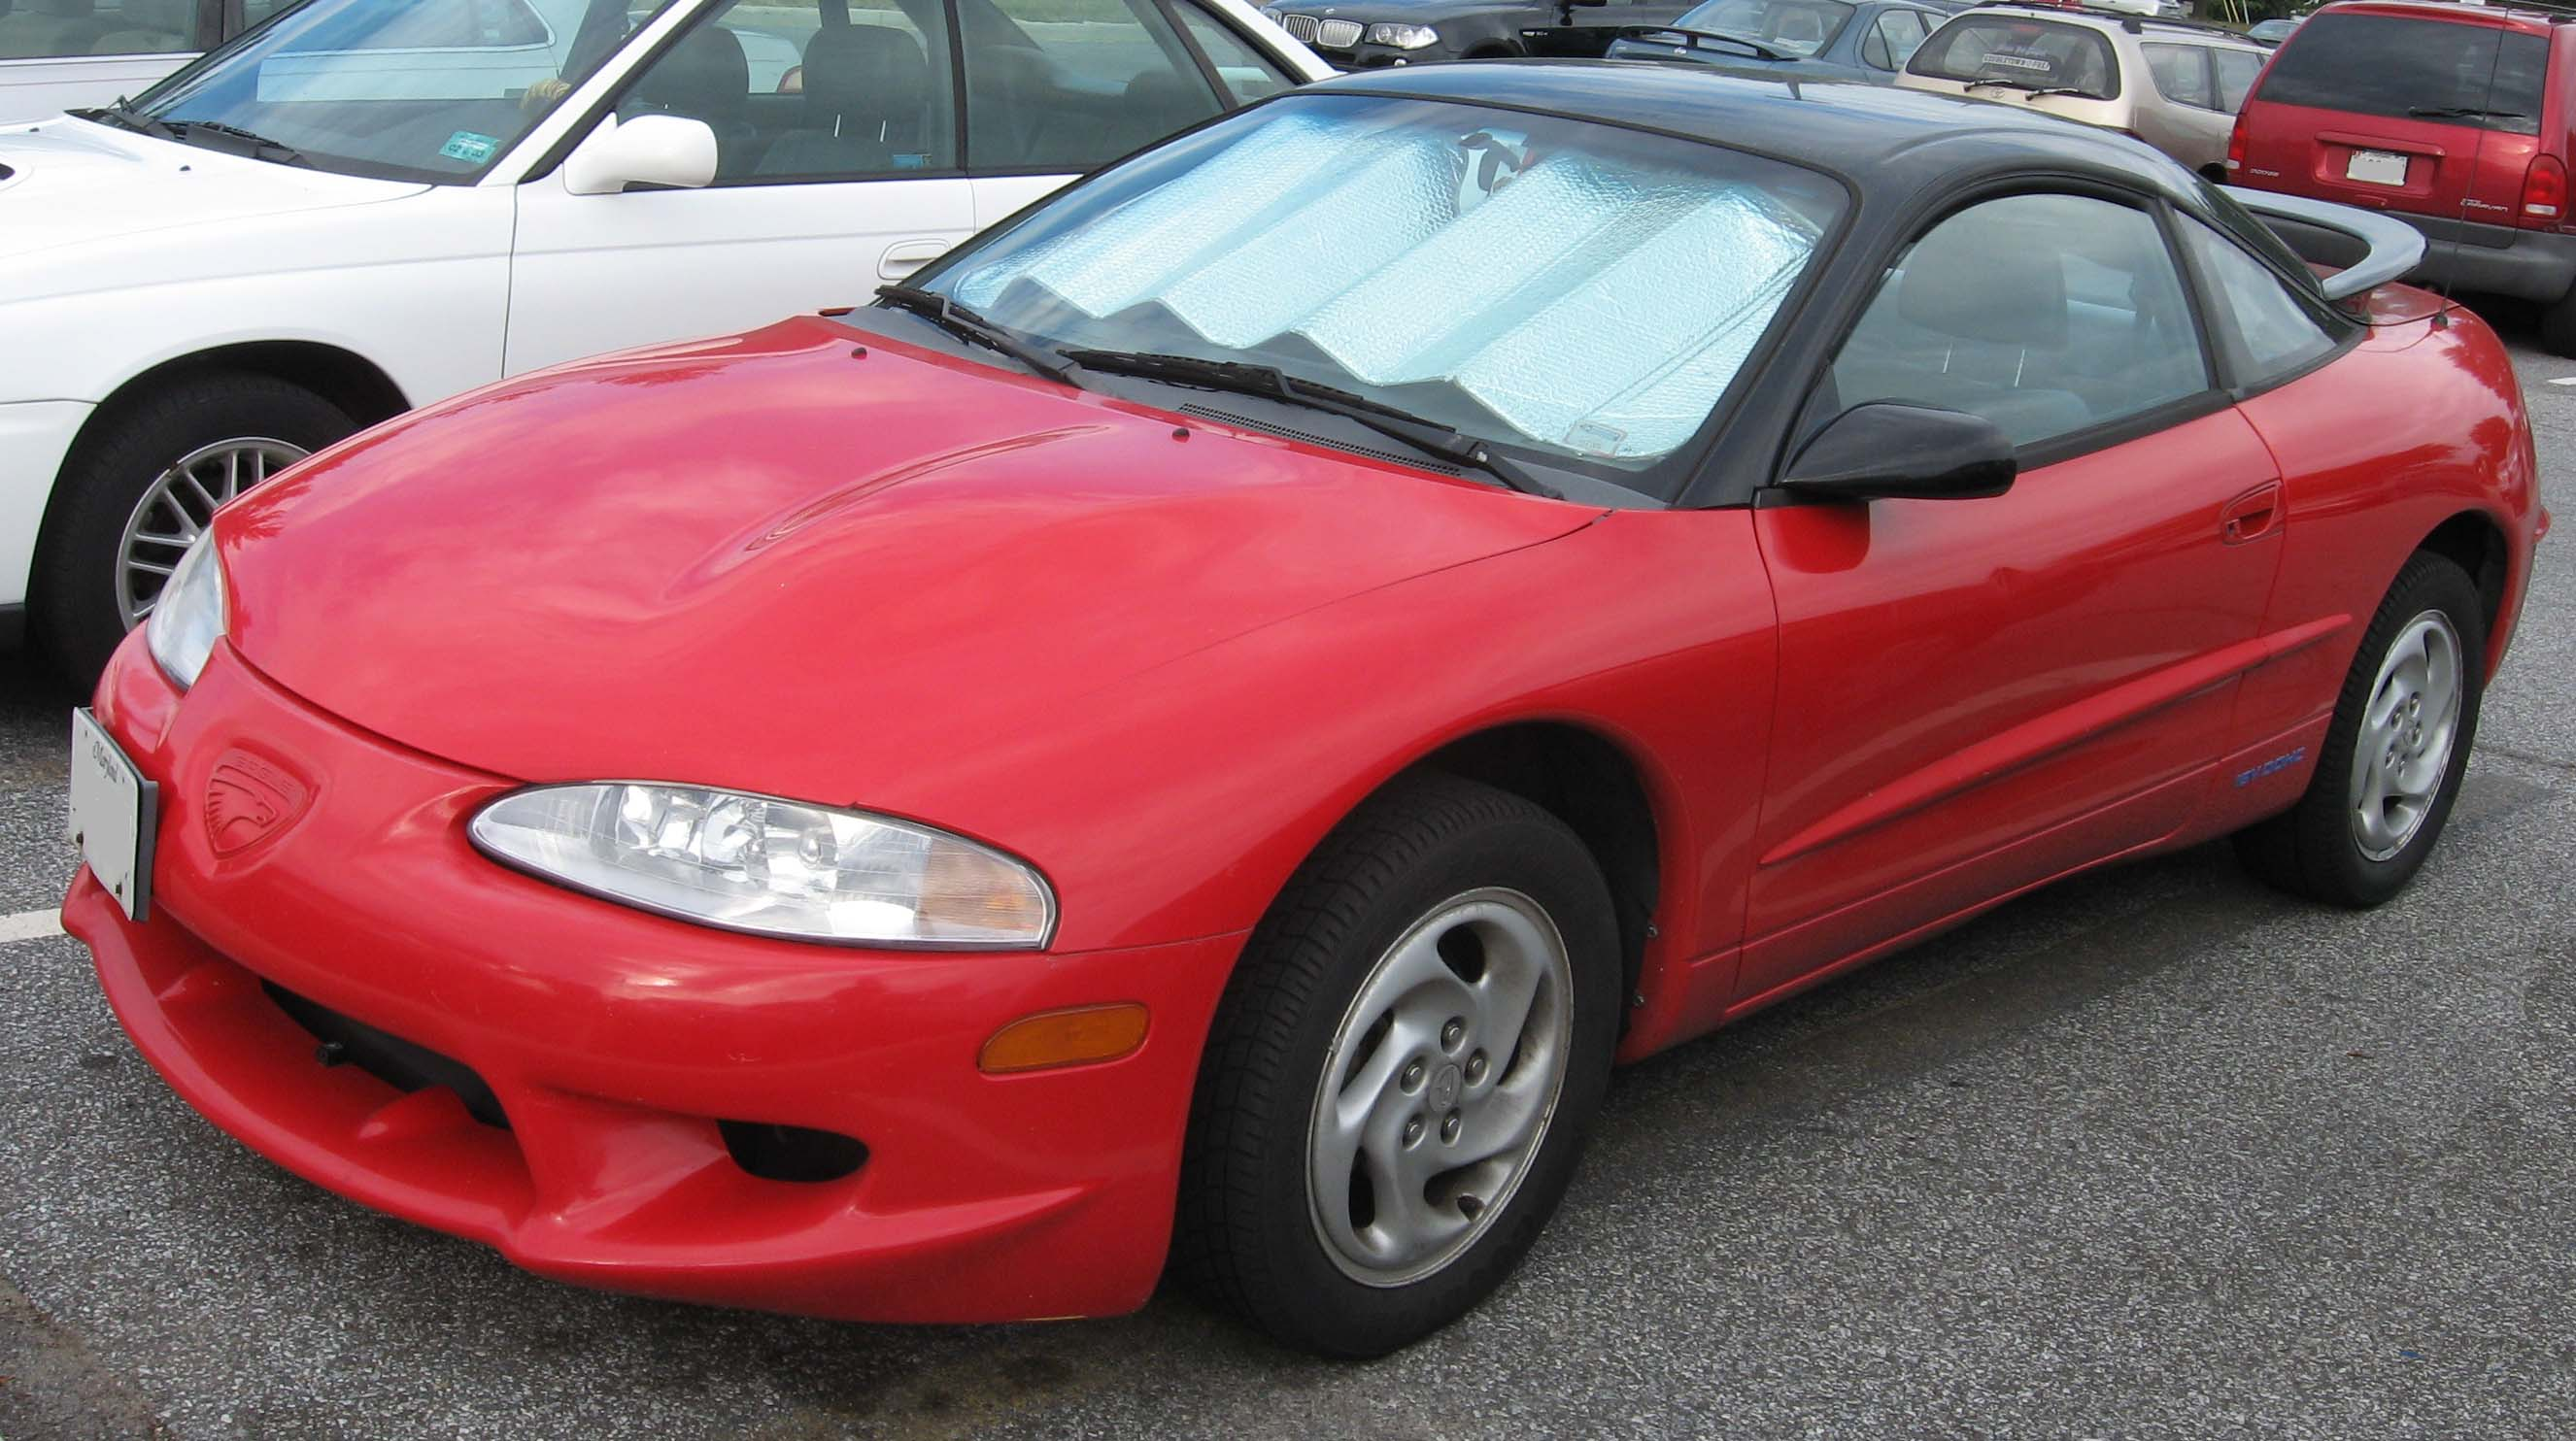 The 1998 Eagle Talon- Getting Better and Better